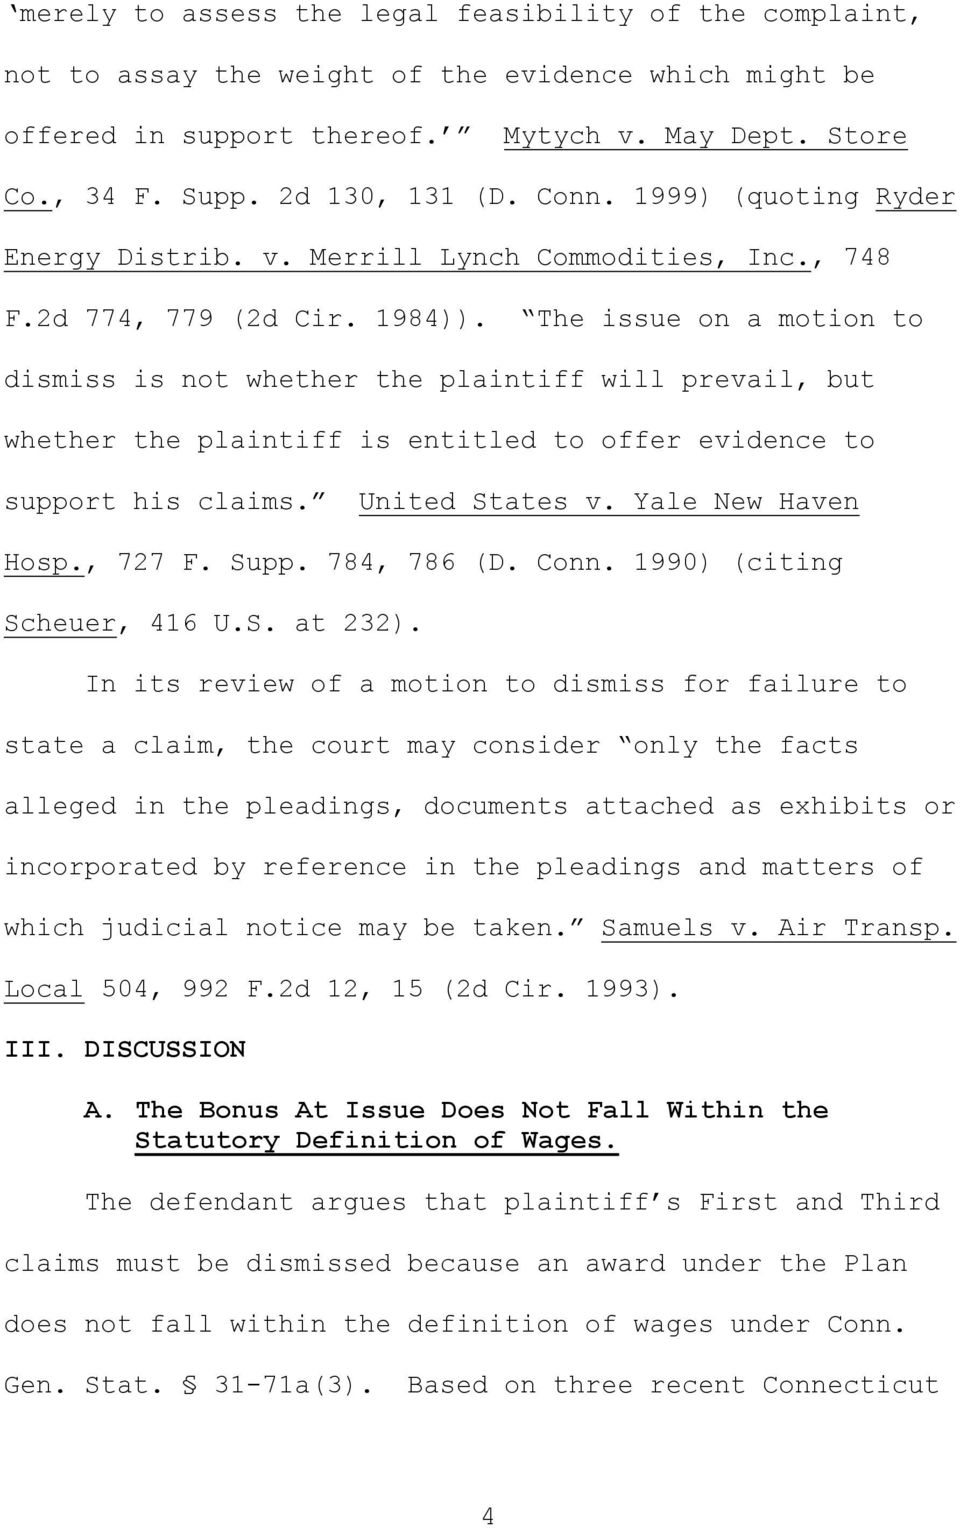 The issue on a motion to dismiss is not whether the plaintiff will prevail, but whether the plaintiff is entitled to offer evidence to support his claims. United States v. Yale New Haven Hosp., 727 F.